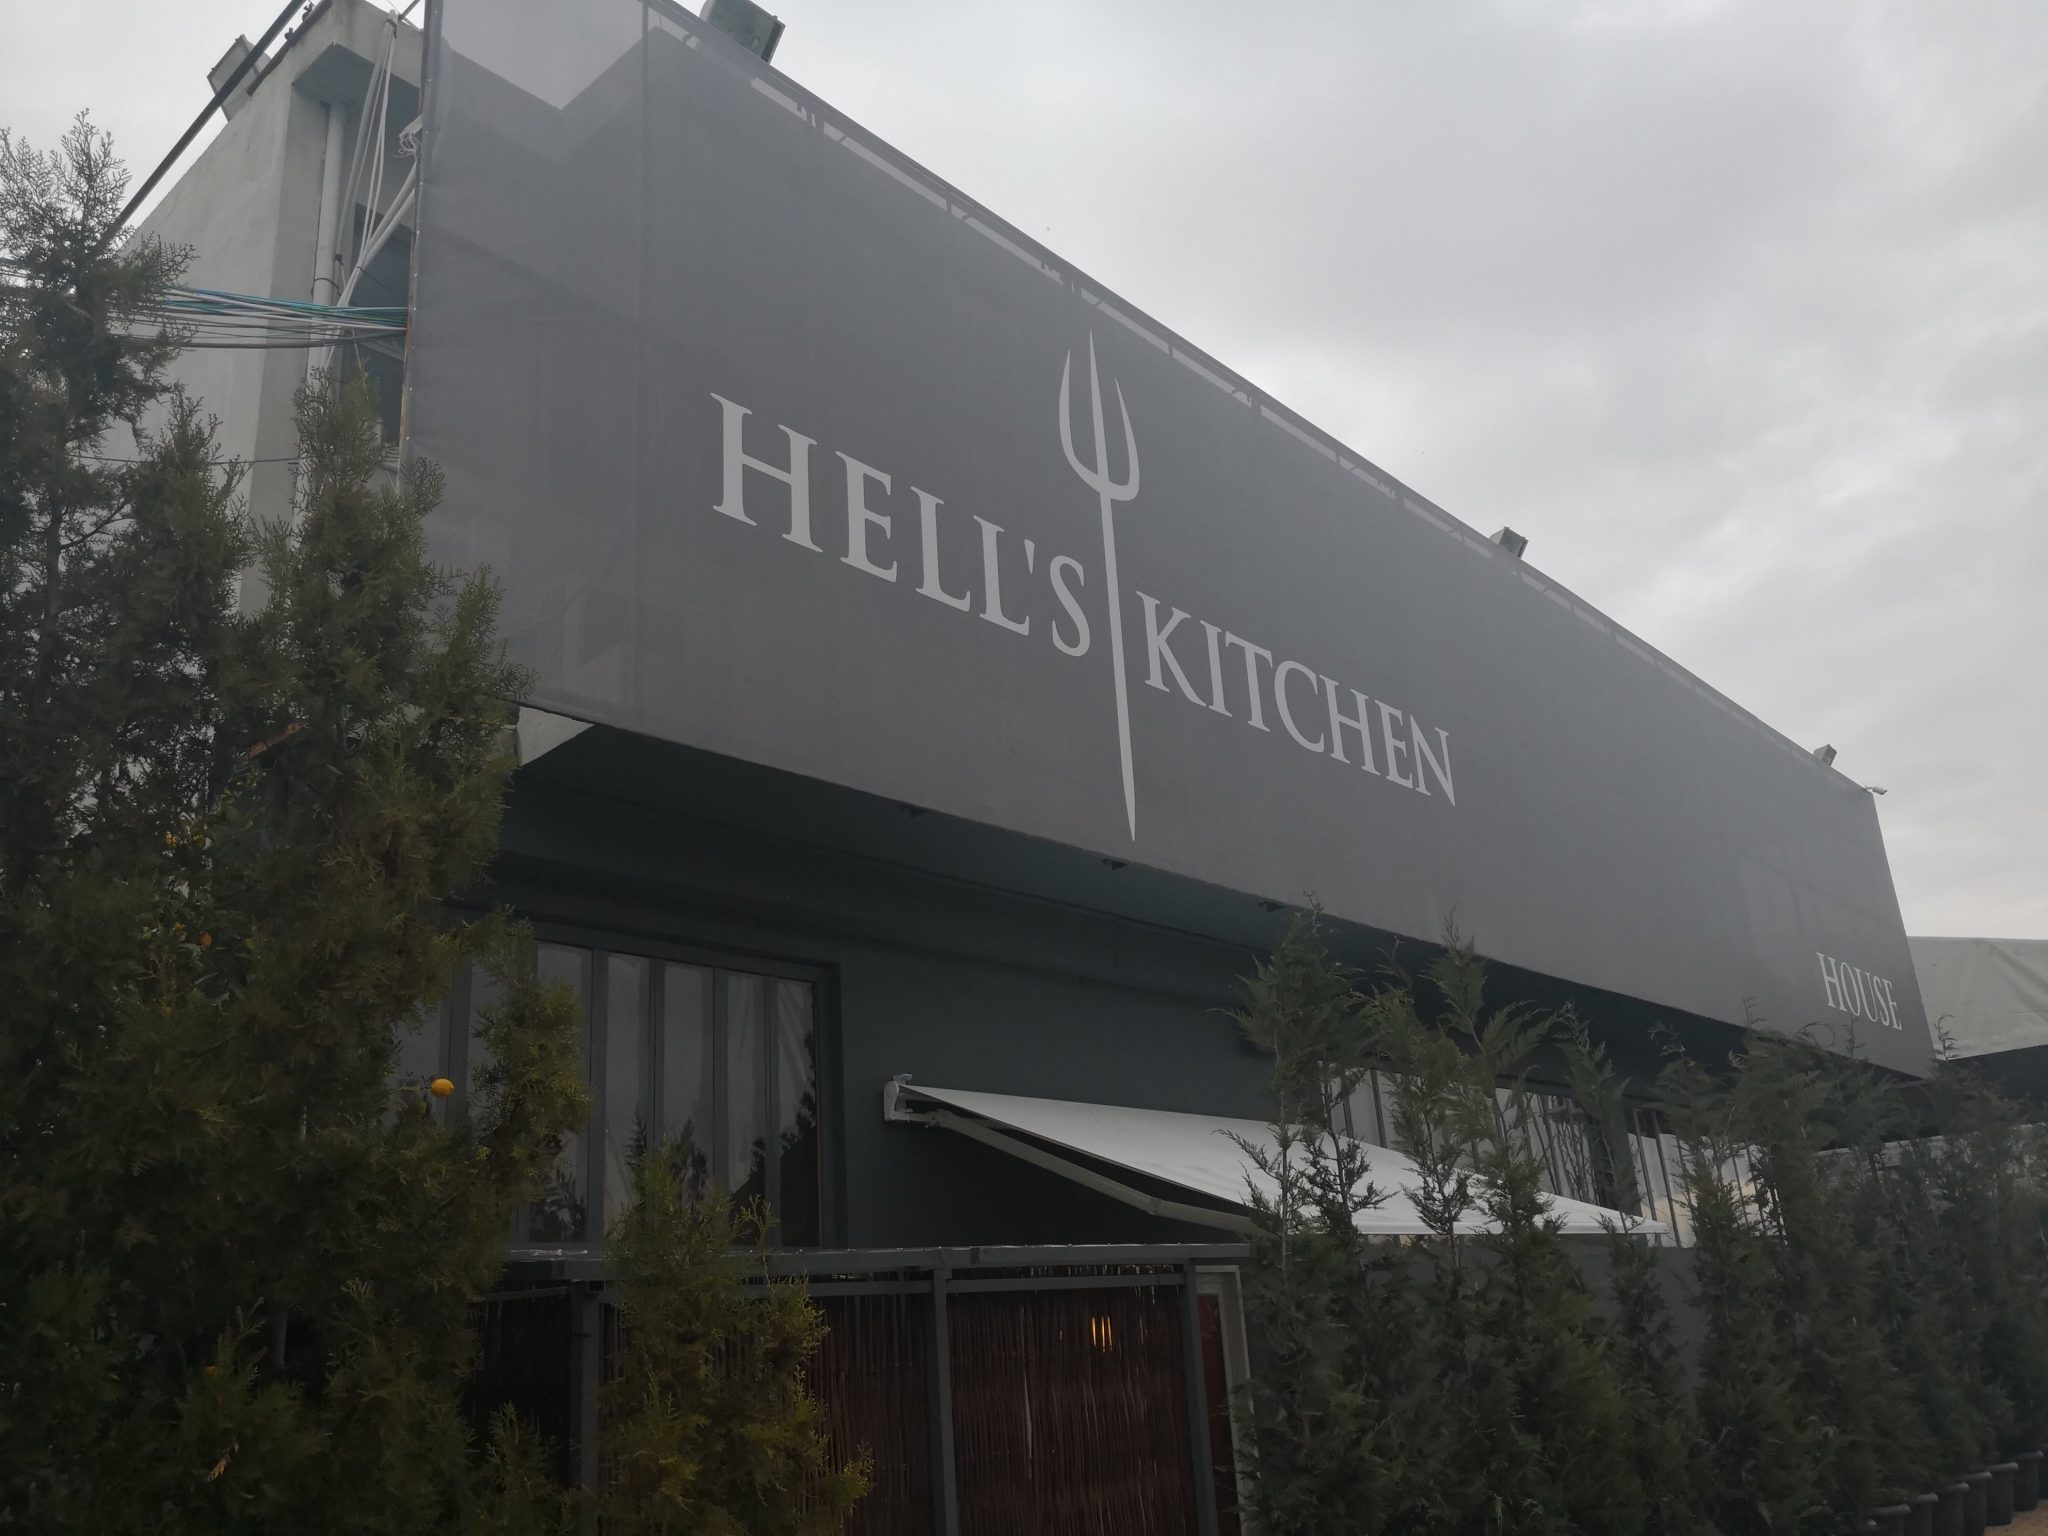 Hell's Kitchen Greece 2018